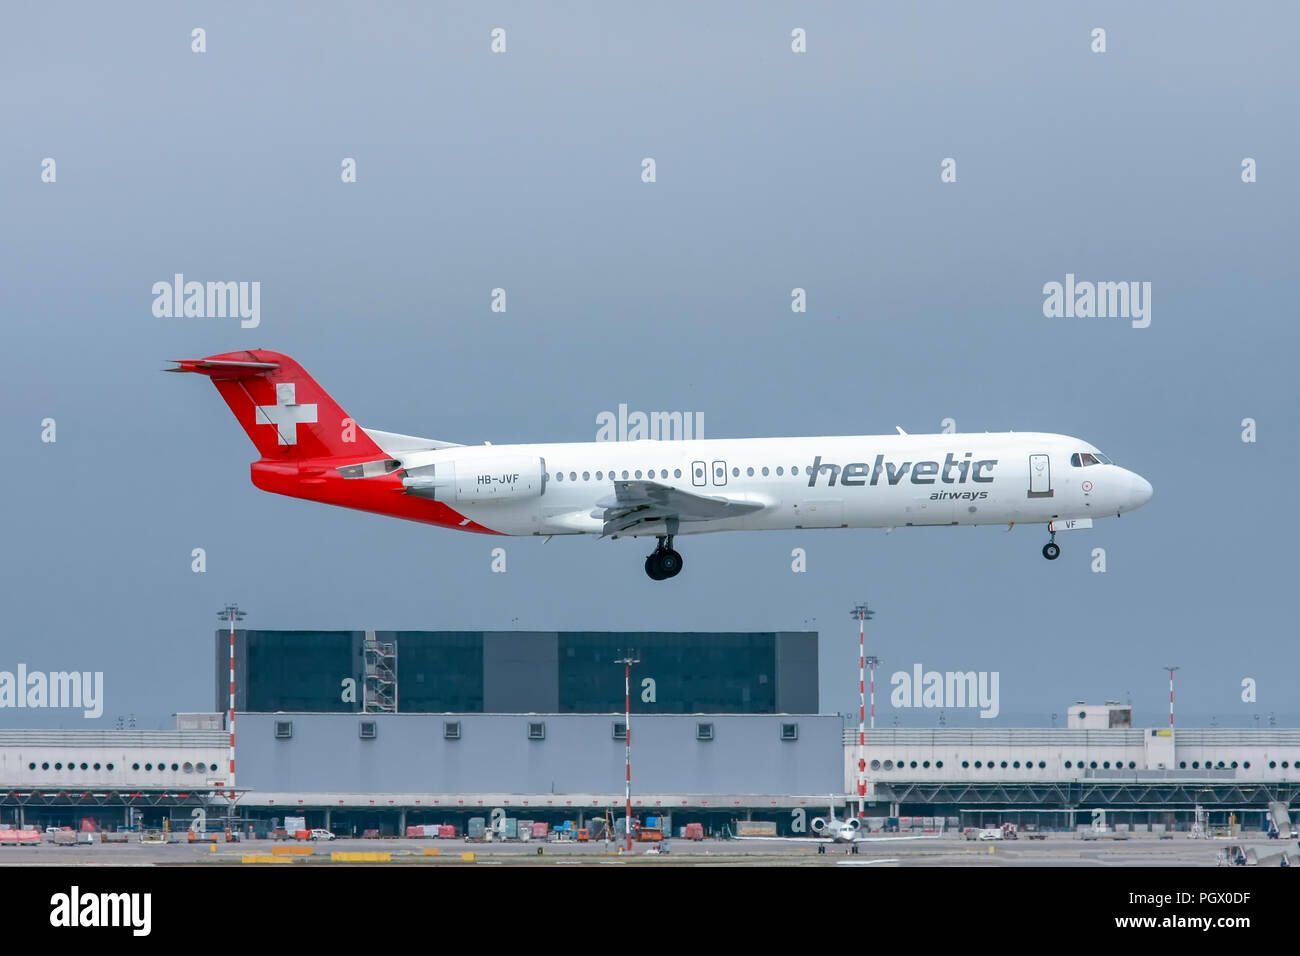 Helvetic Airways, Fokker F100 at Malpensa (MXP / LIMC), Milan, Italy - Stock Image